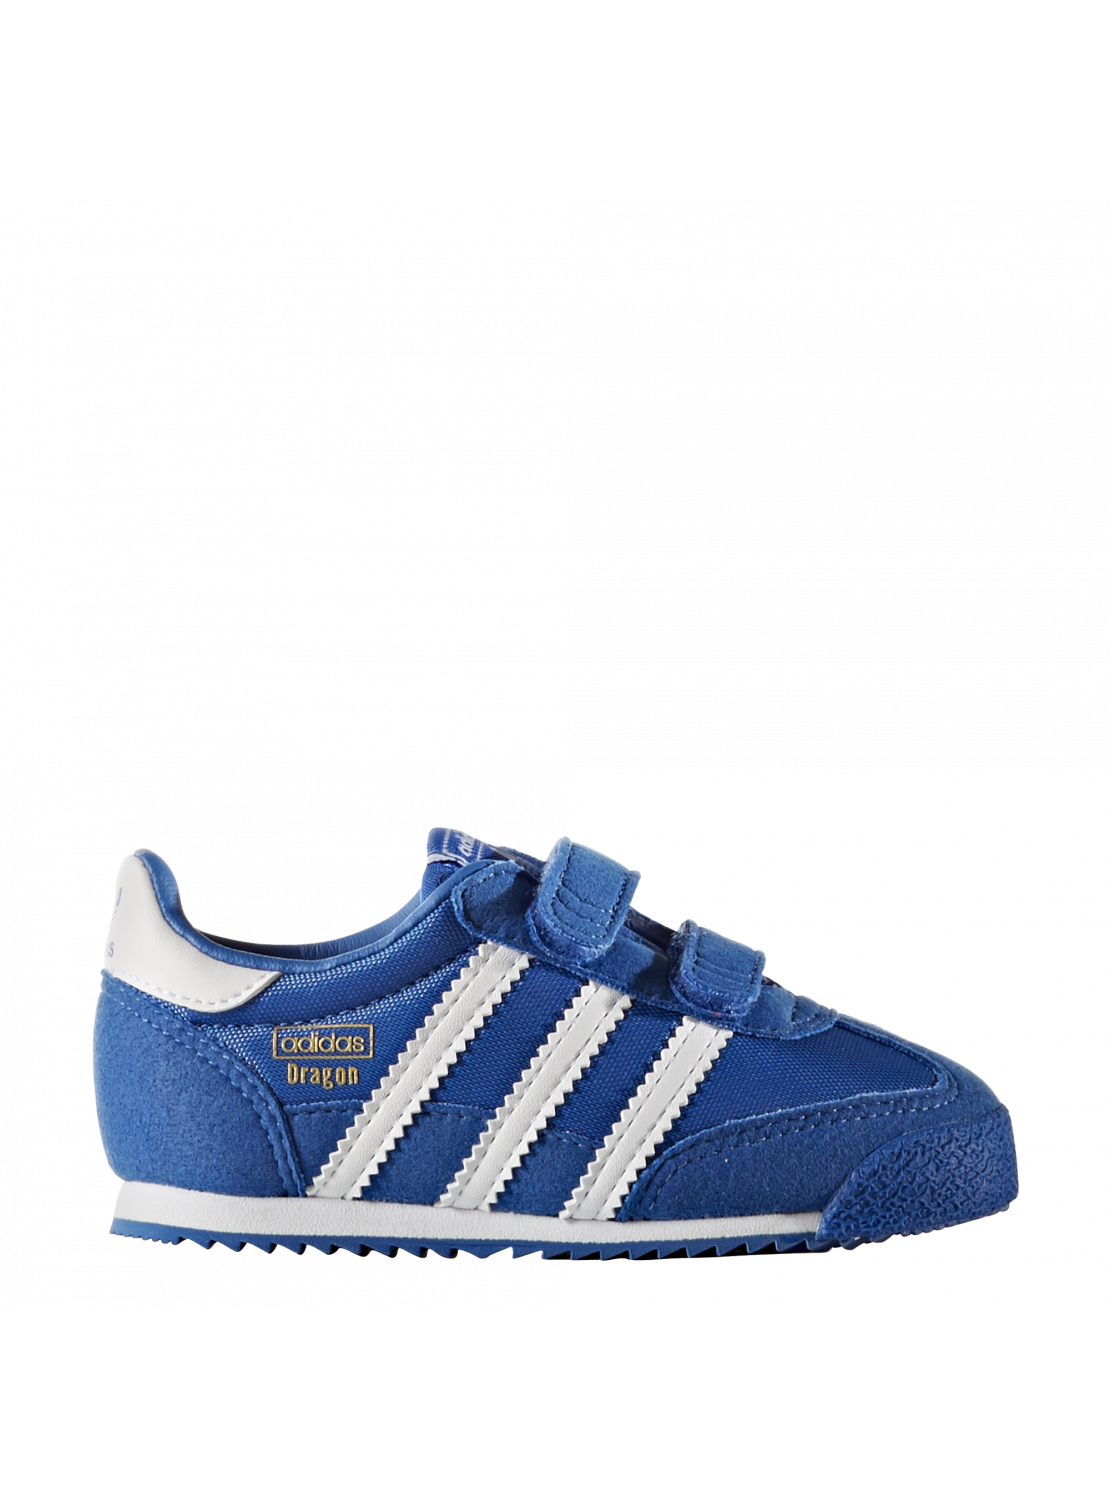 2zapatillas adidas dragon